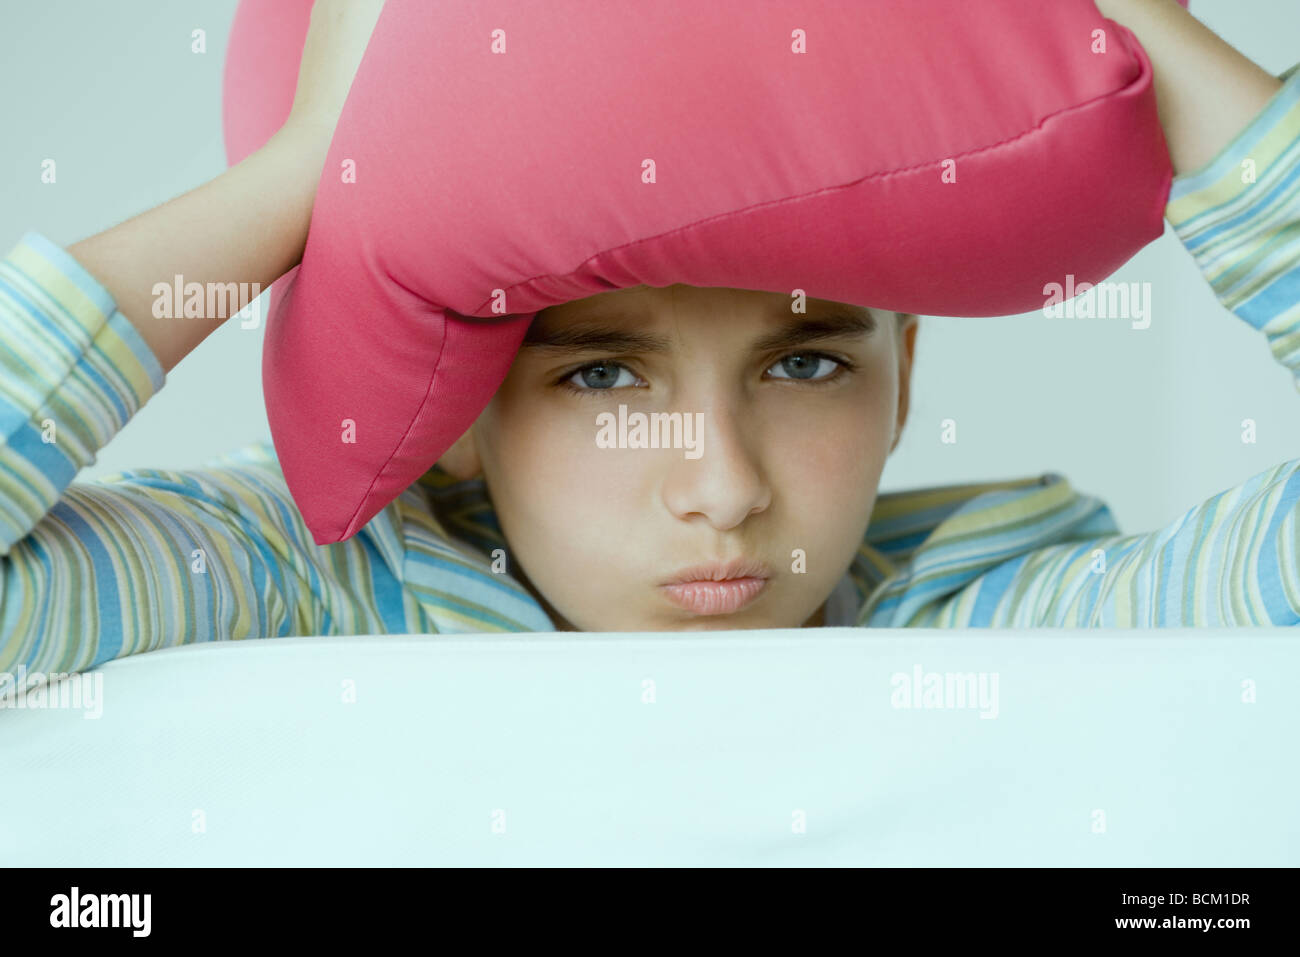 Preteen girl holding pillow on head, making faces at camera, close-up - Stock Image